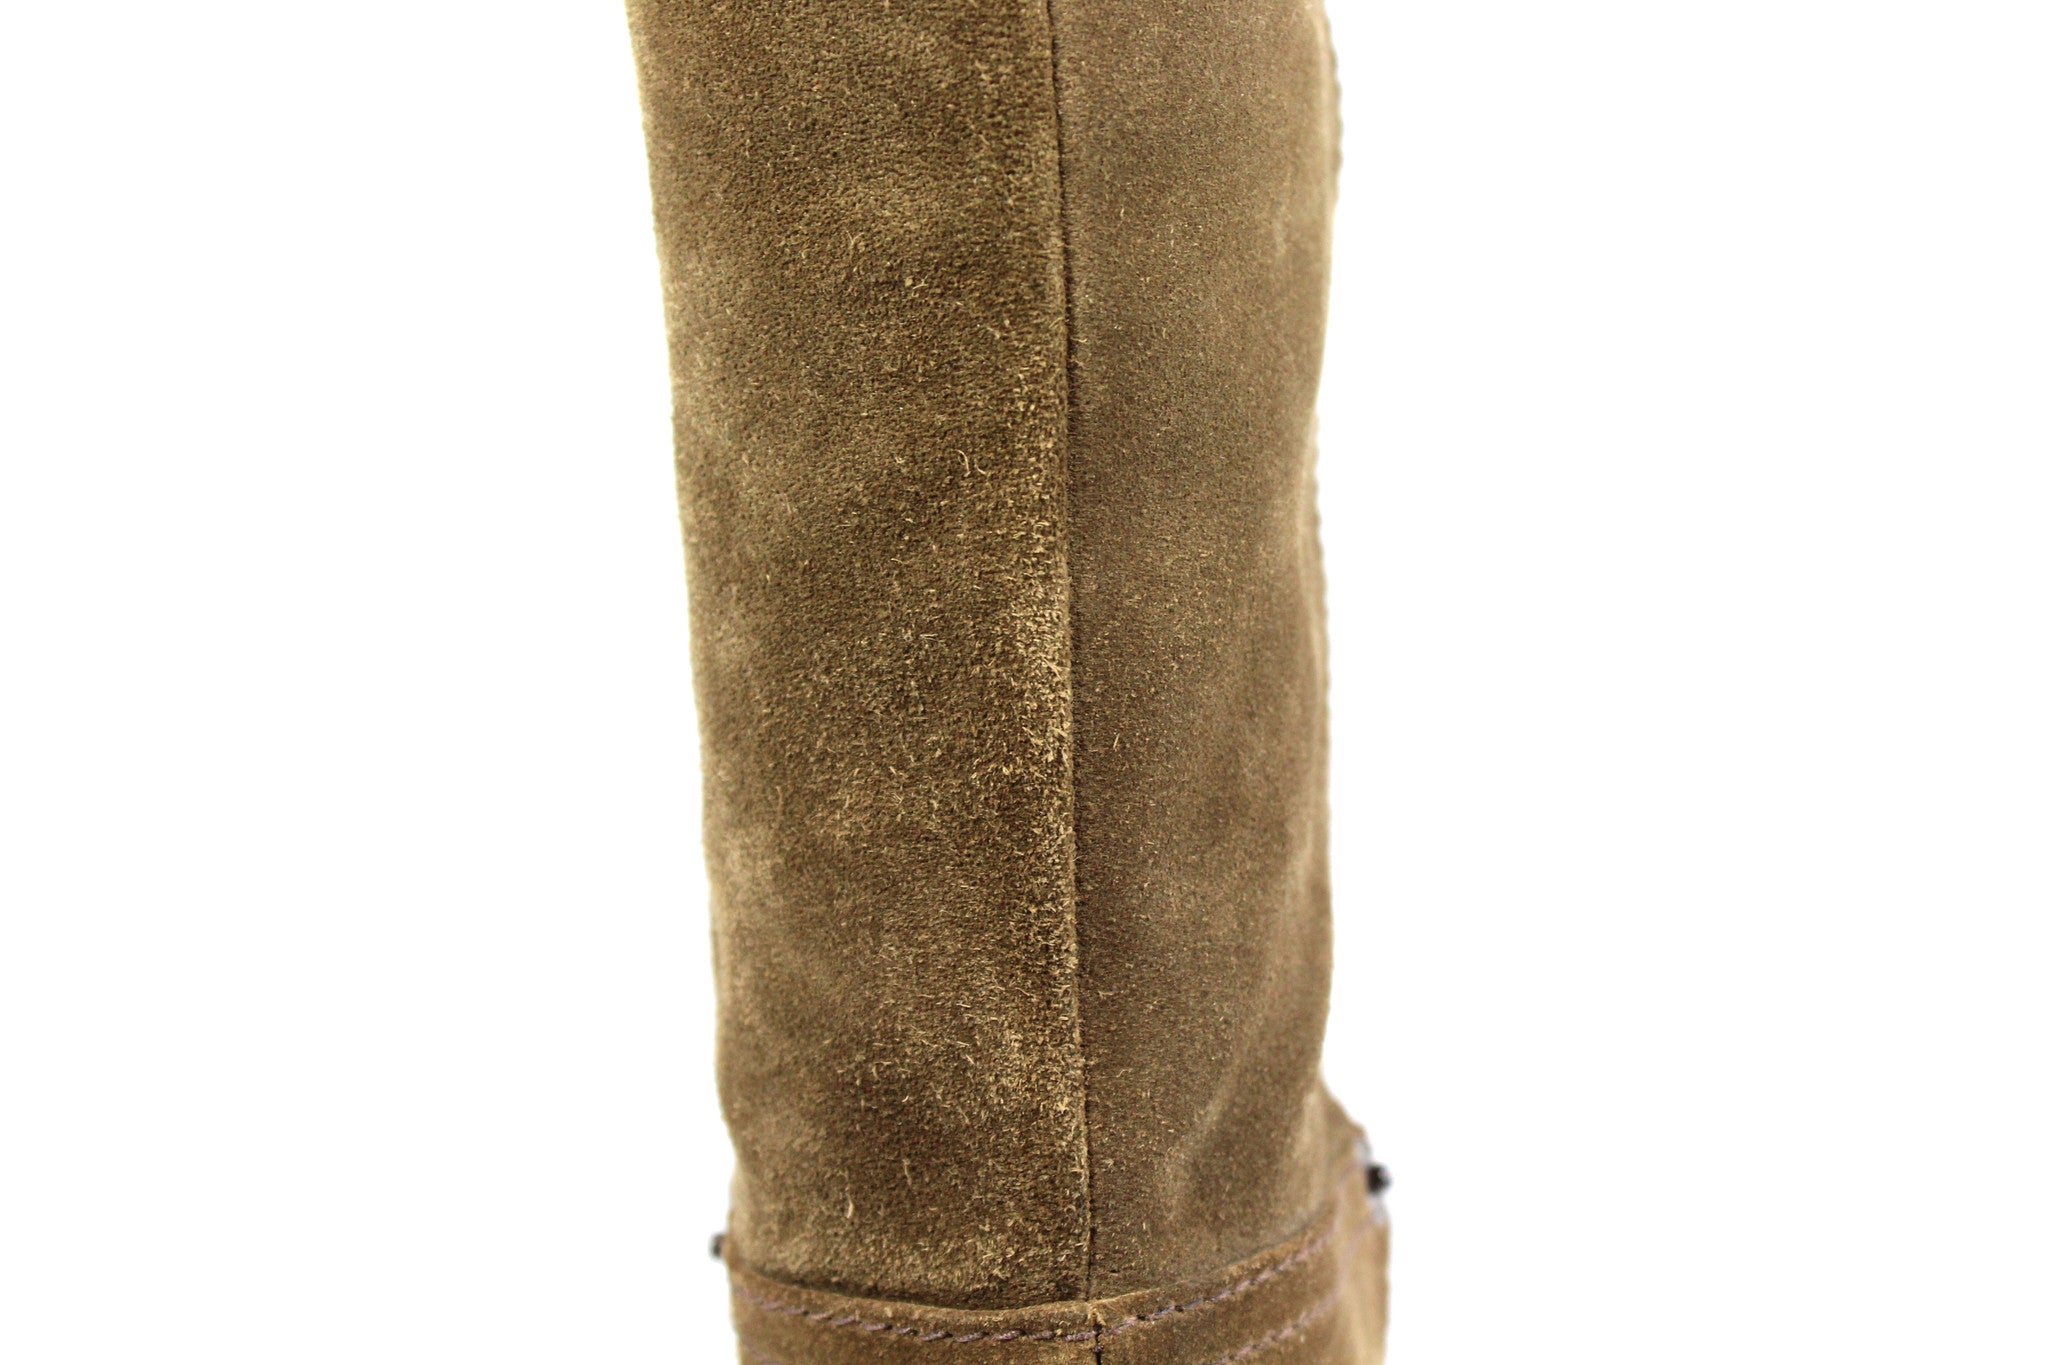 Prada Suede Taupe Wedge Boots (Size 38) - Encore Consignment - 9